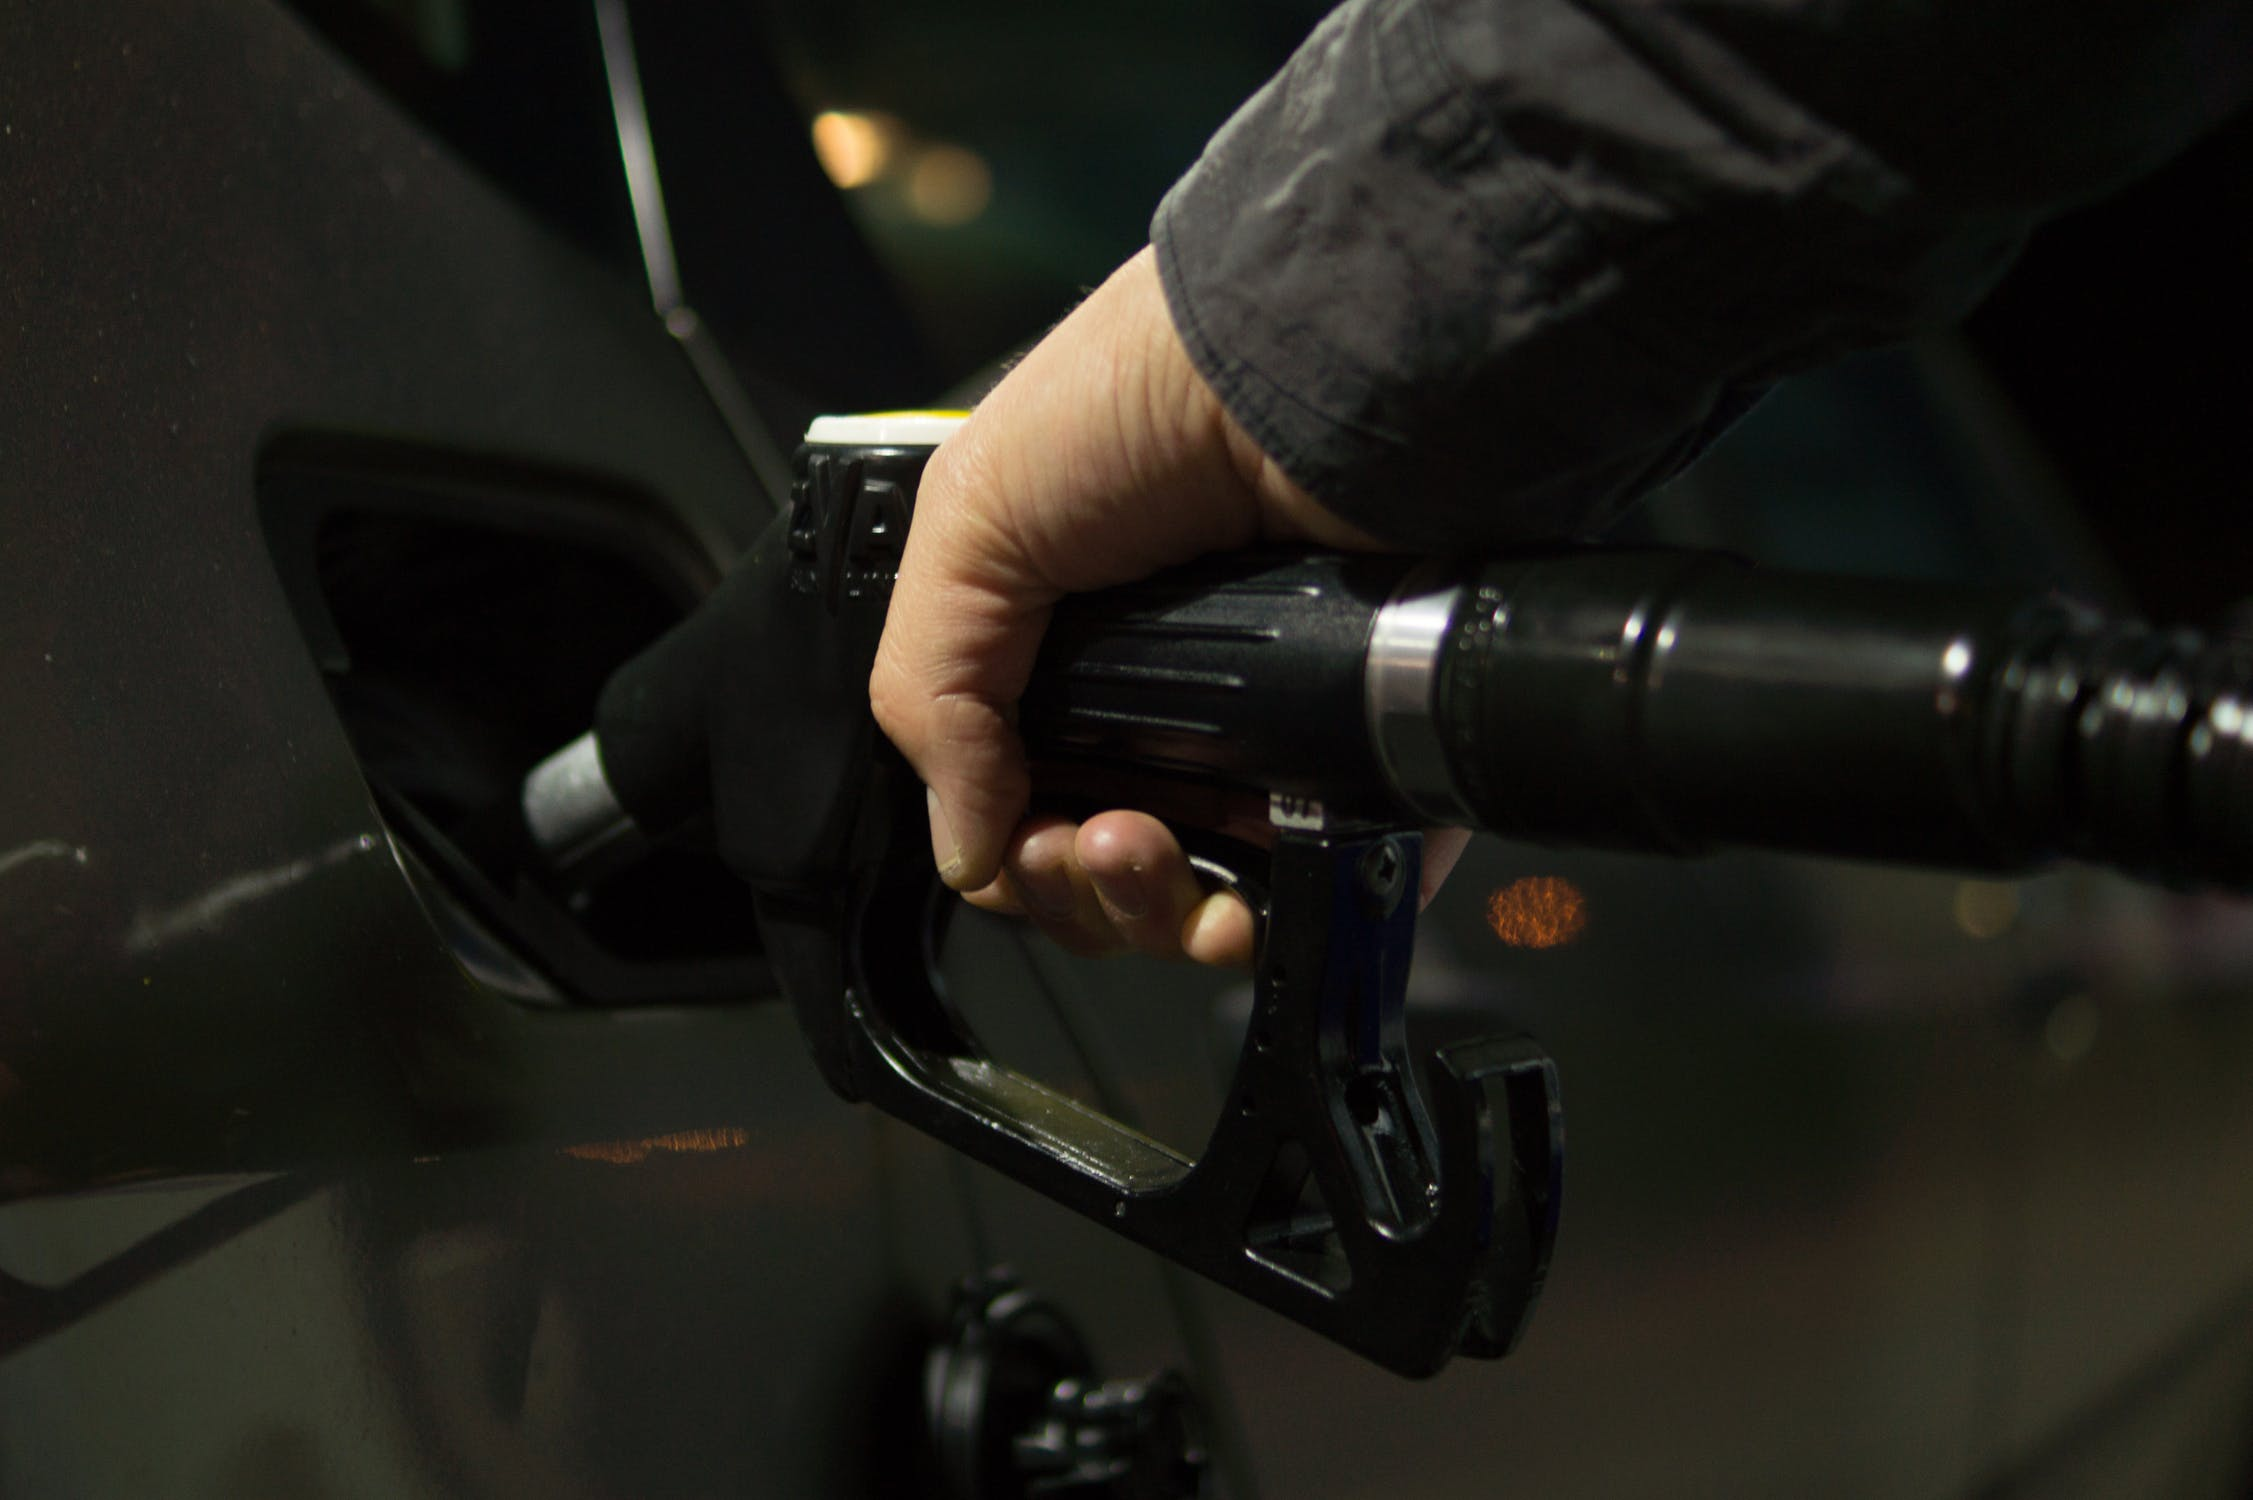 Gas prices are going up as America reopens, the national average is $2.10 a gallon